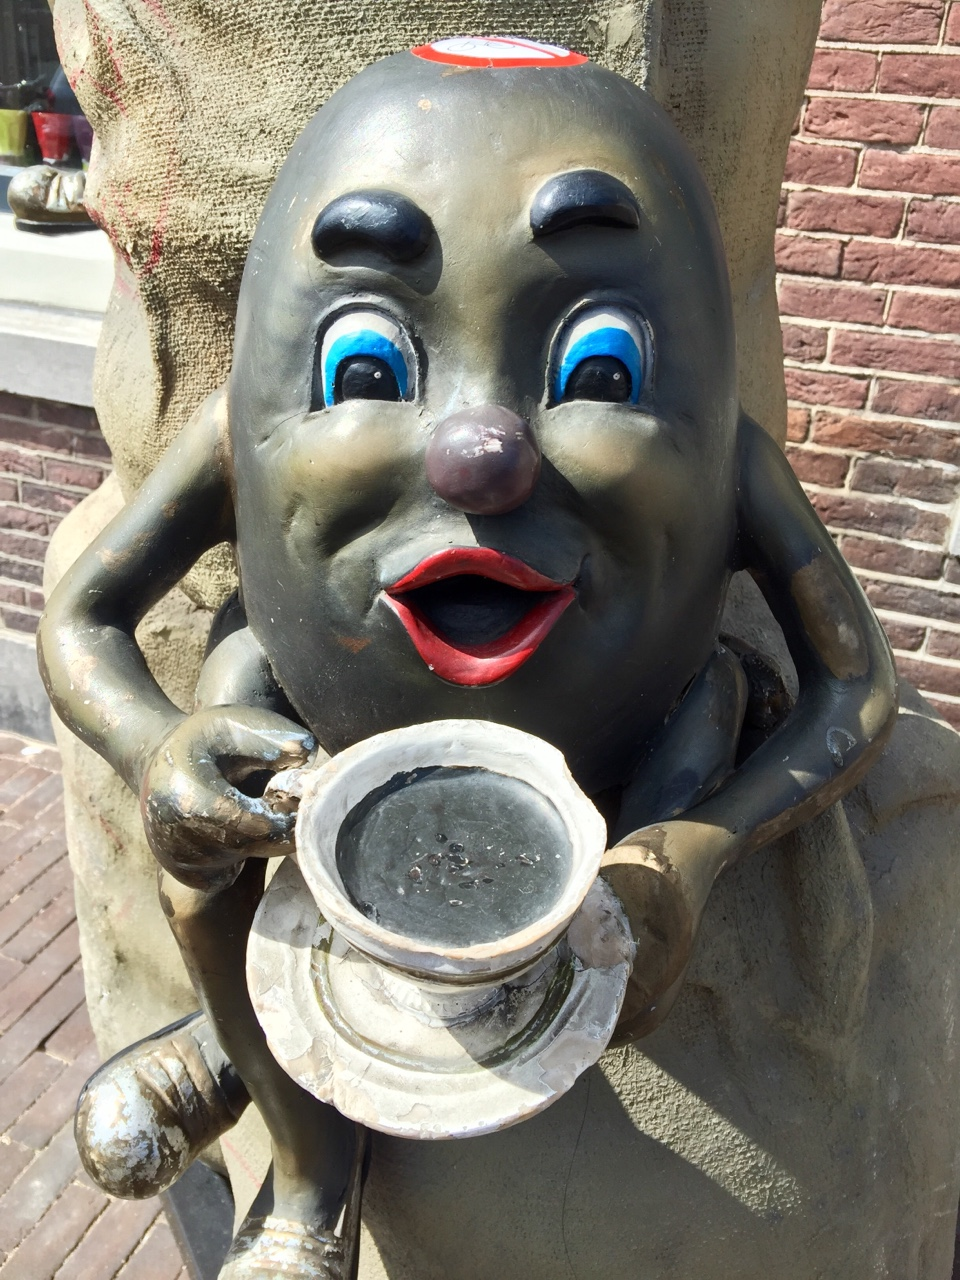 Weesp, Netherlands    I have found the cannibal coffee bean, and it is a fearsome sight to behold 😱